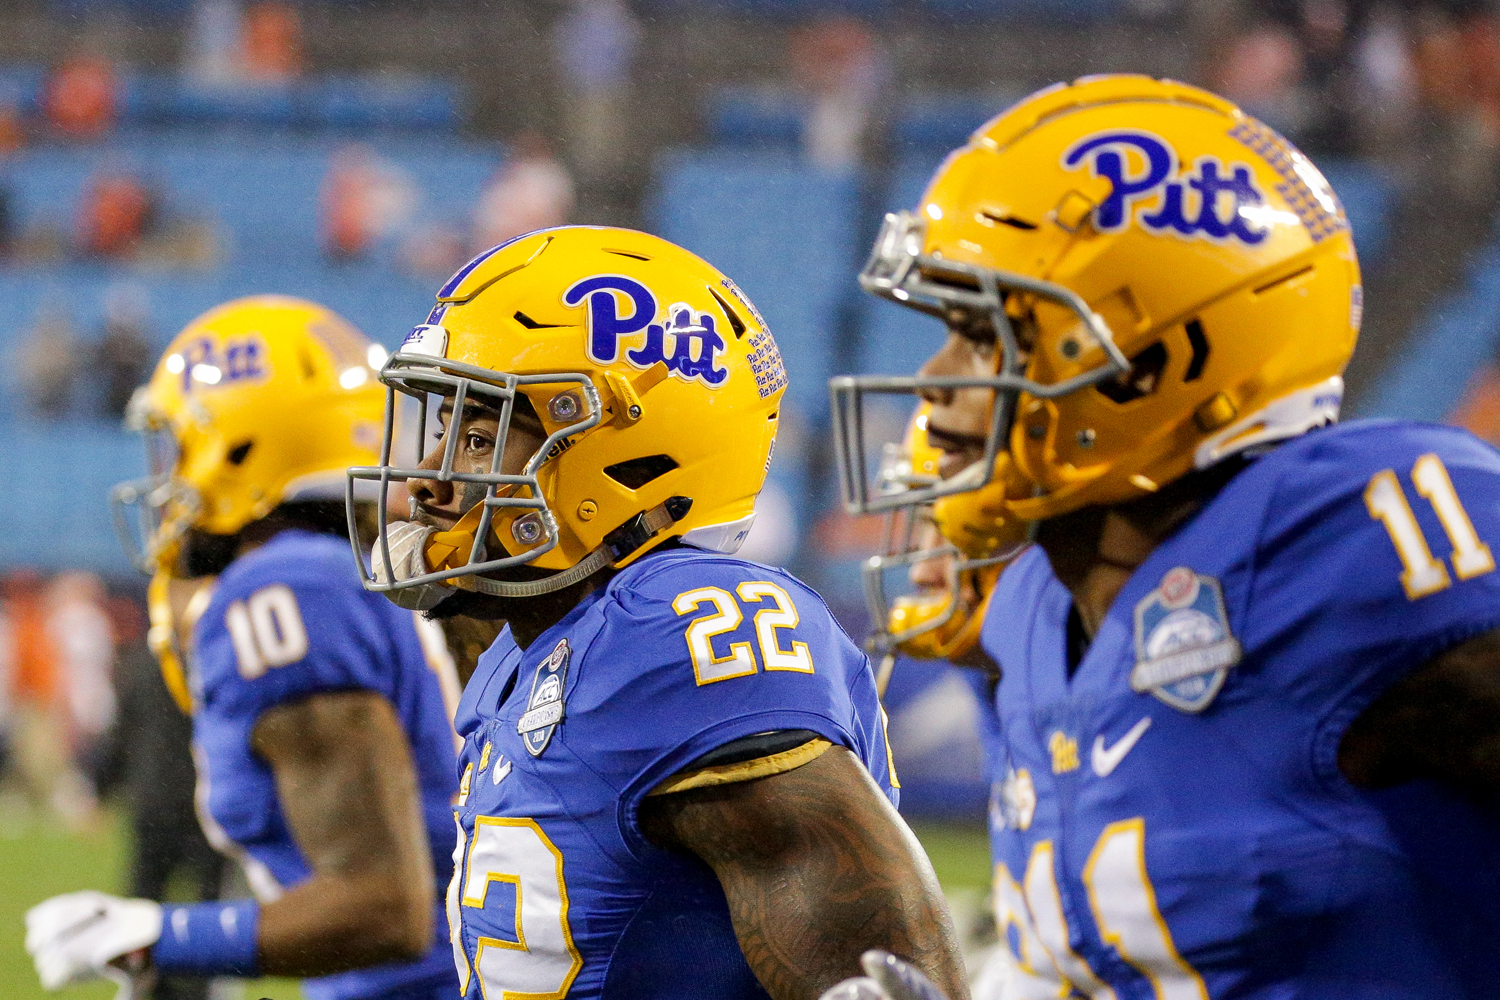 Pitt football's class of 2020 is currently ranked 23rd in the country.